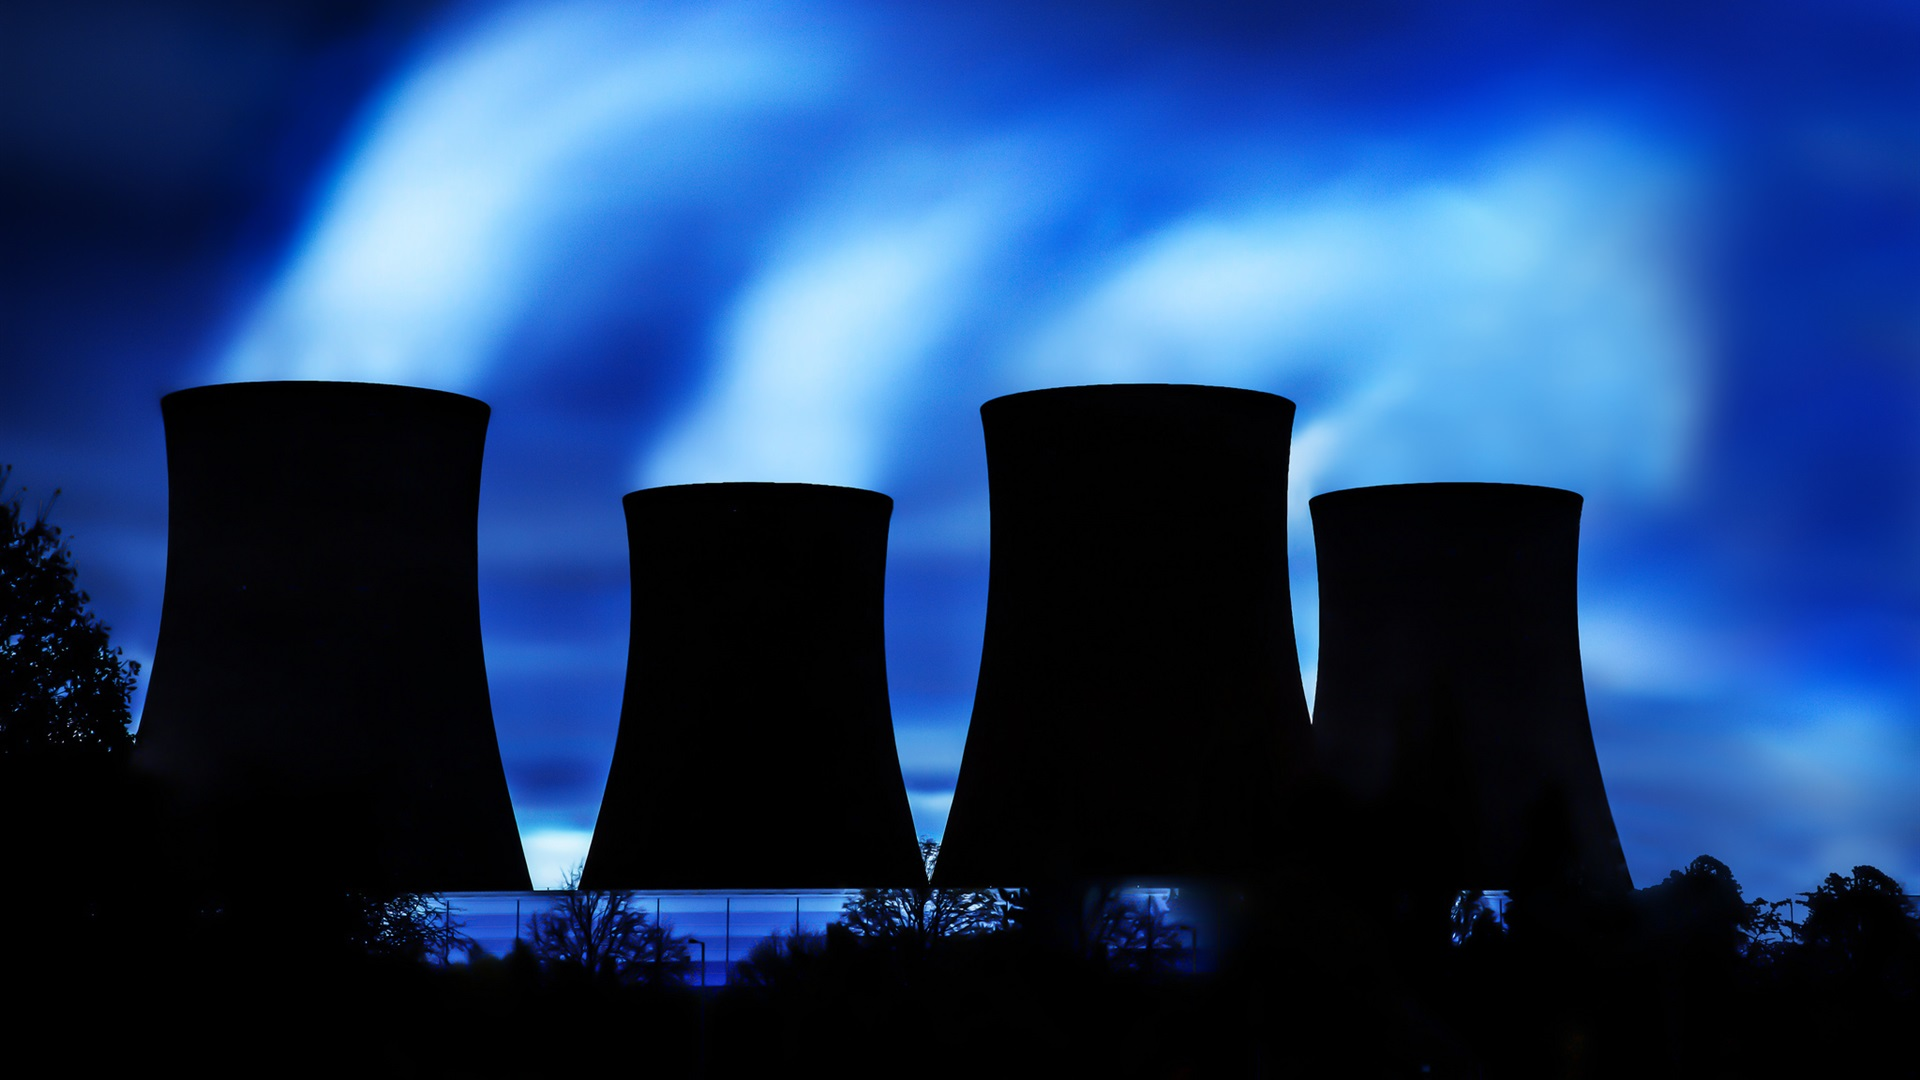 Thermal Power Plant Cooling Tower Silhouette Night